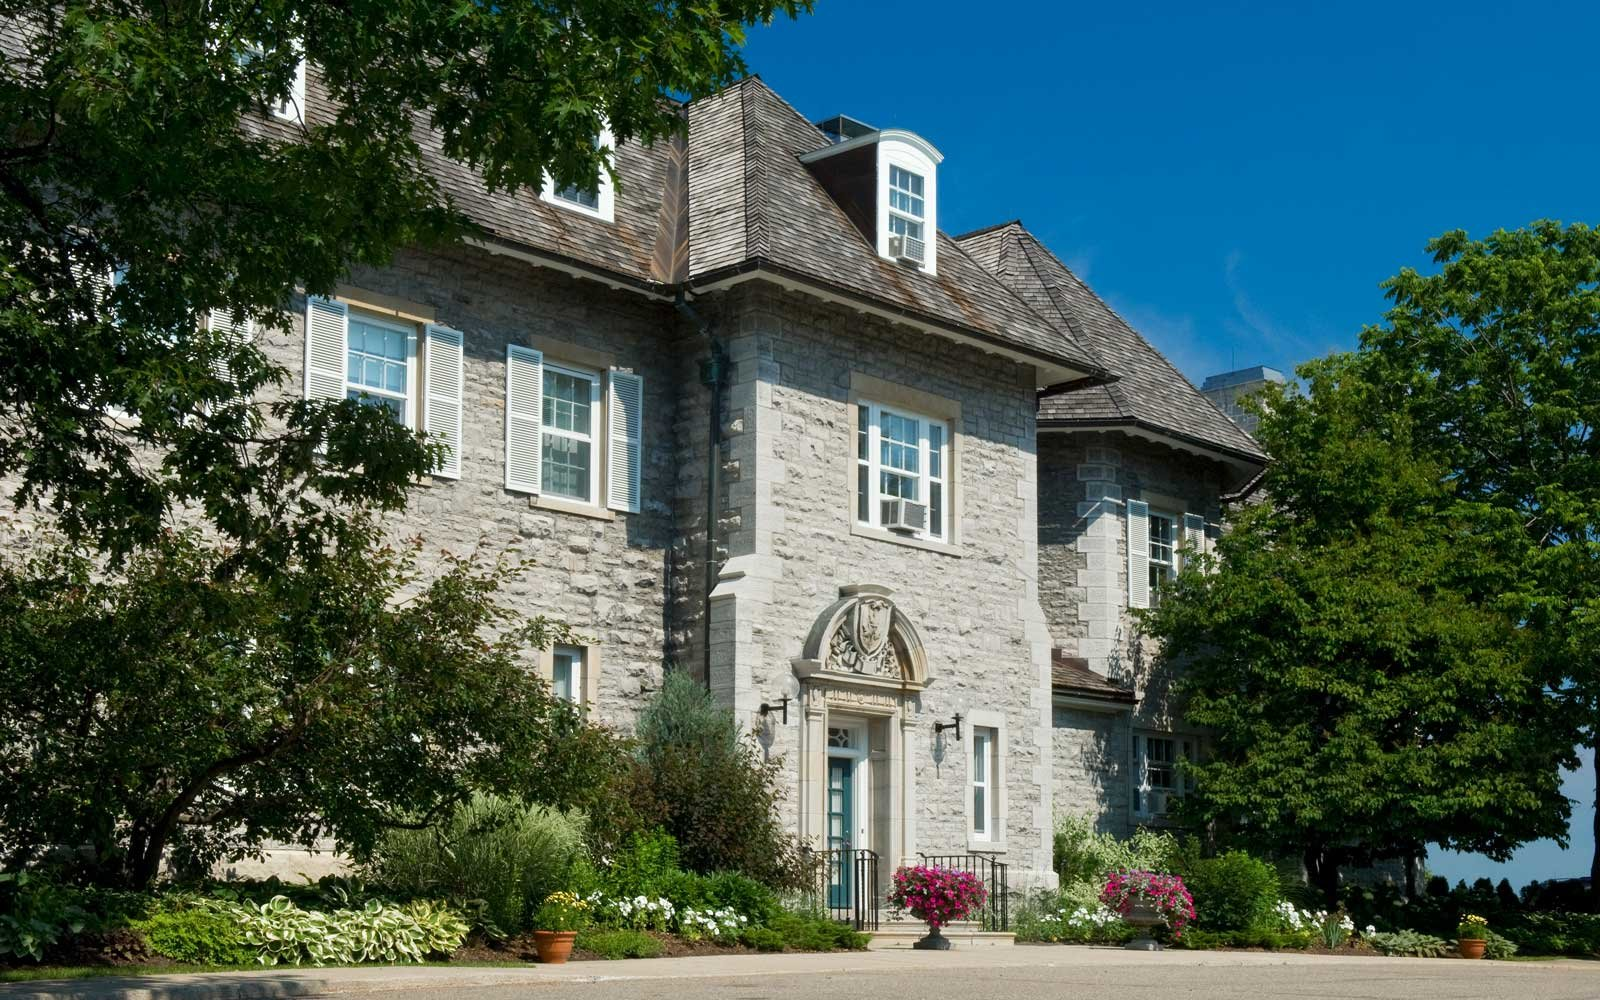 Prime Minister's Residence in Ottawa, Canada